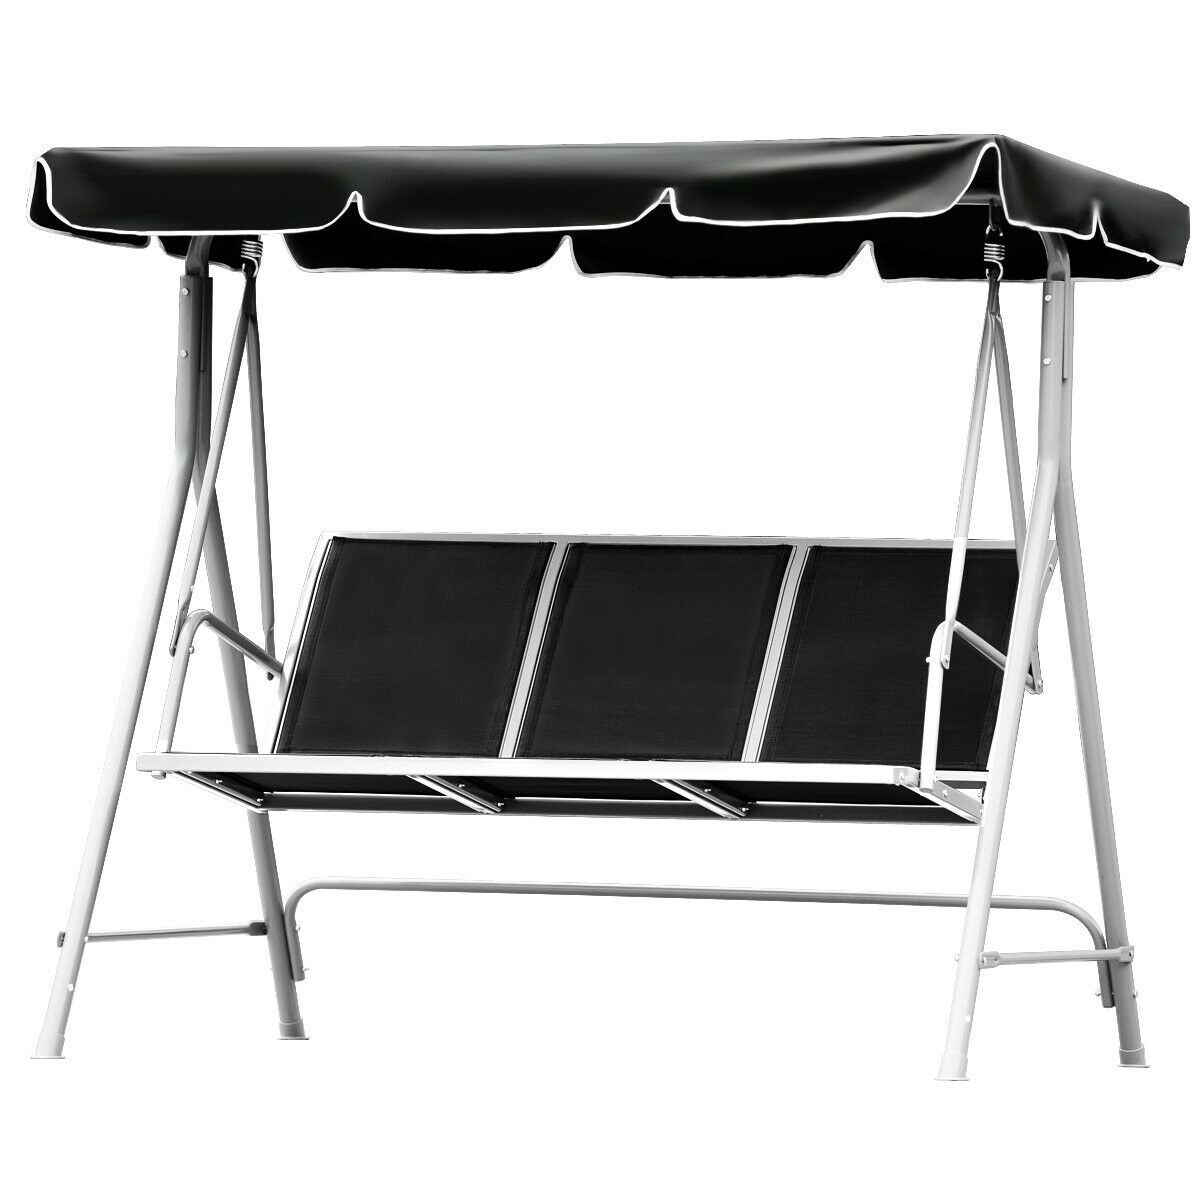 Swing With Canopy Porch Patio Bench Black Mesh Seat Heavy Duty Steel Frame Stand